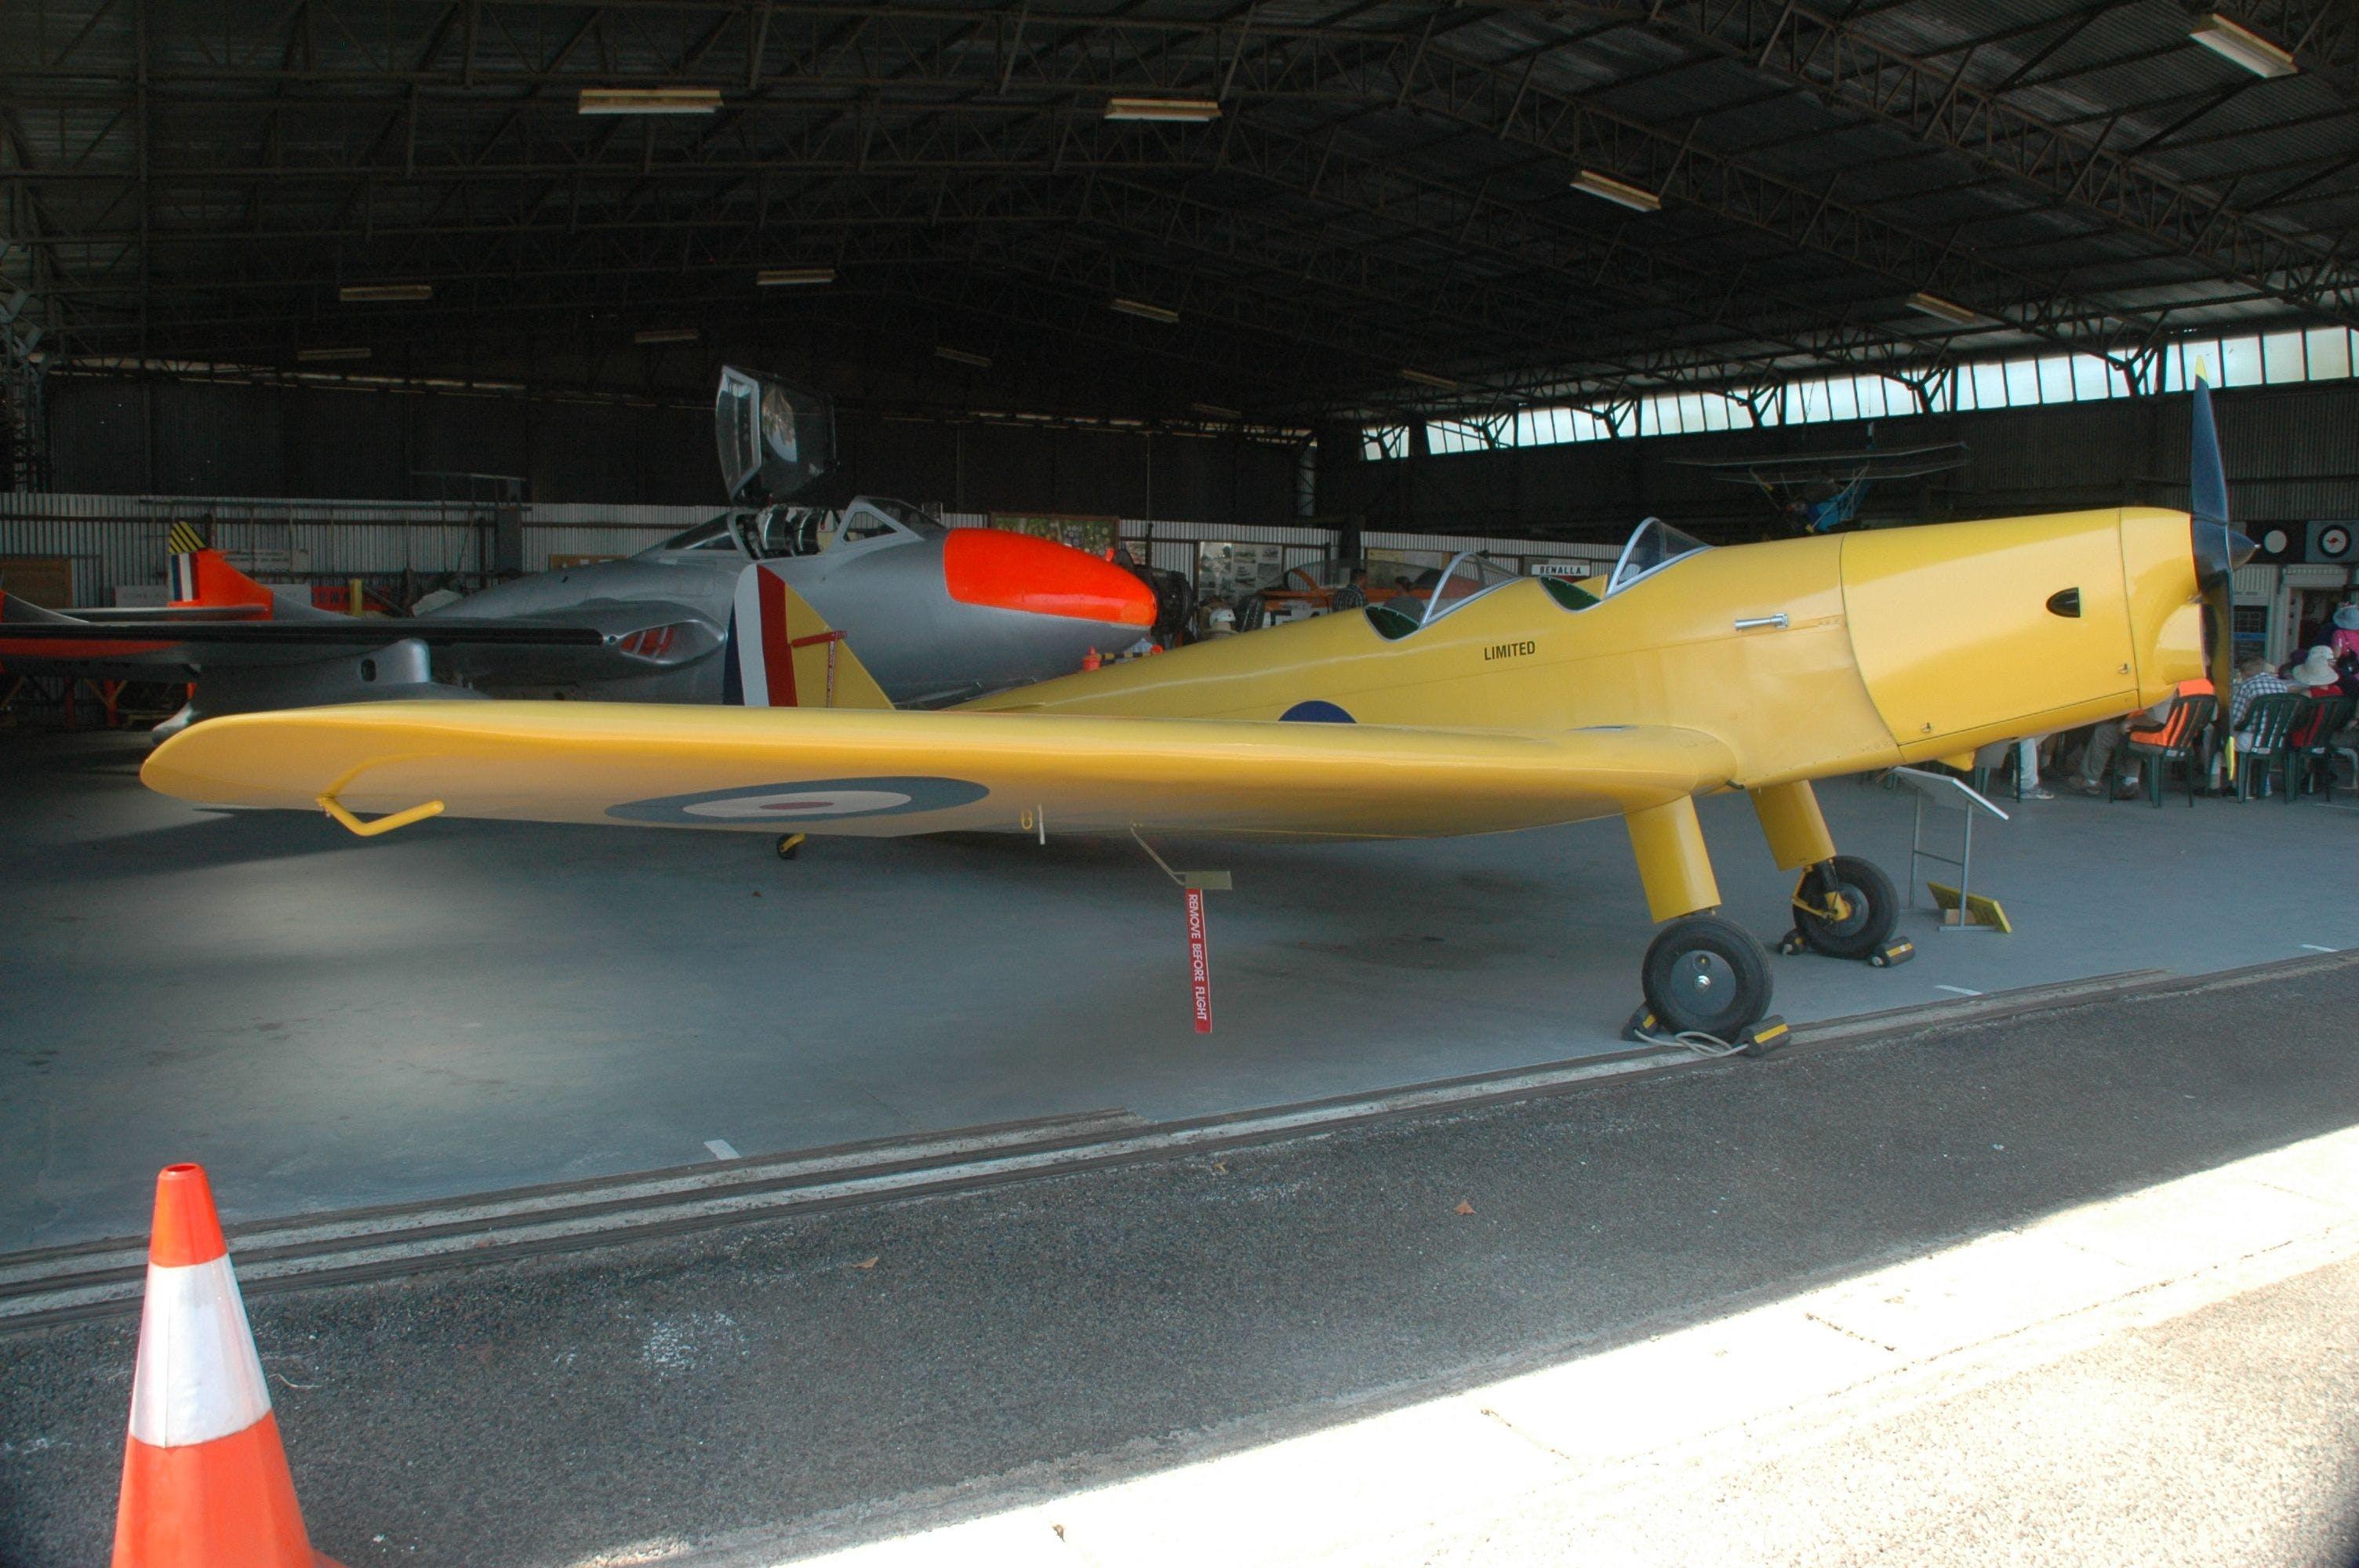 Benalla Aviation Museum - Attractions